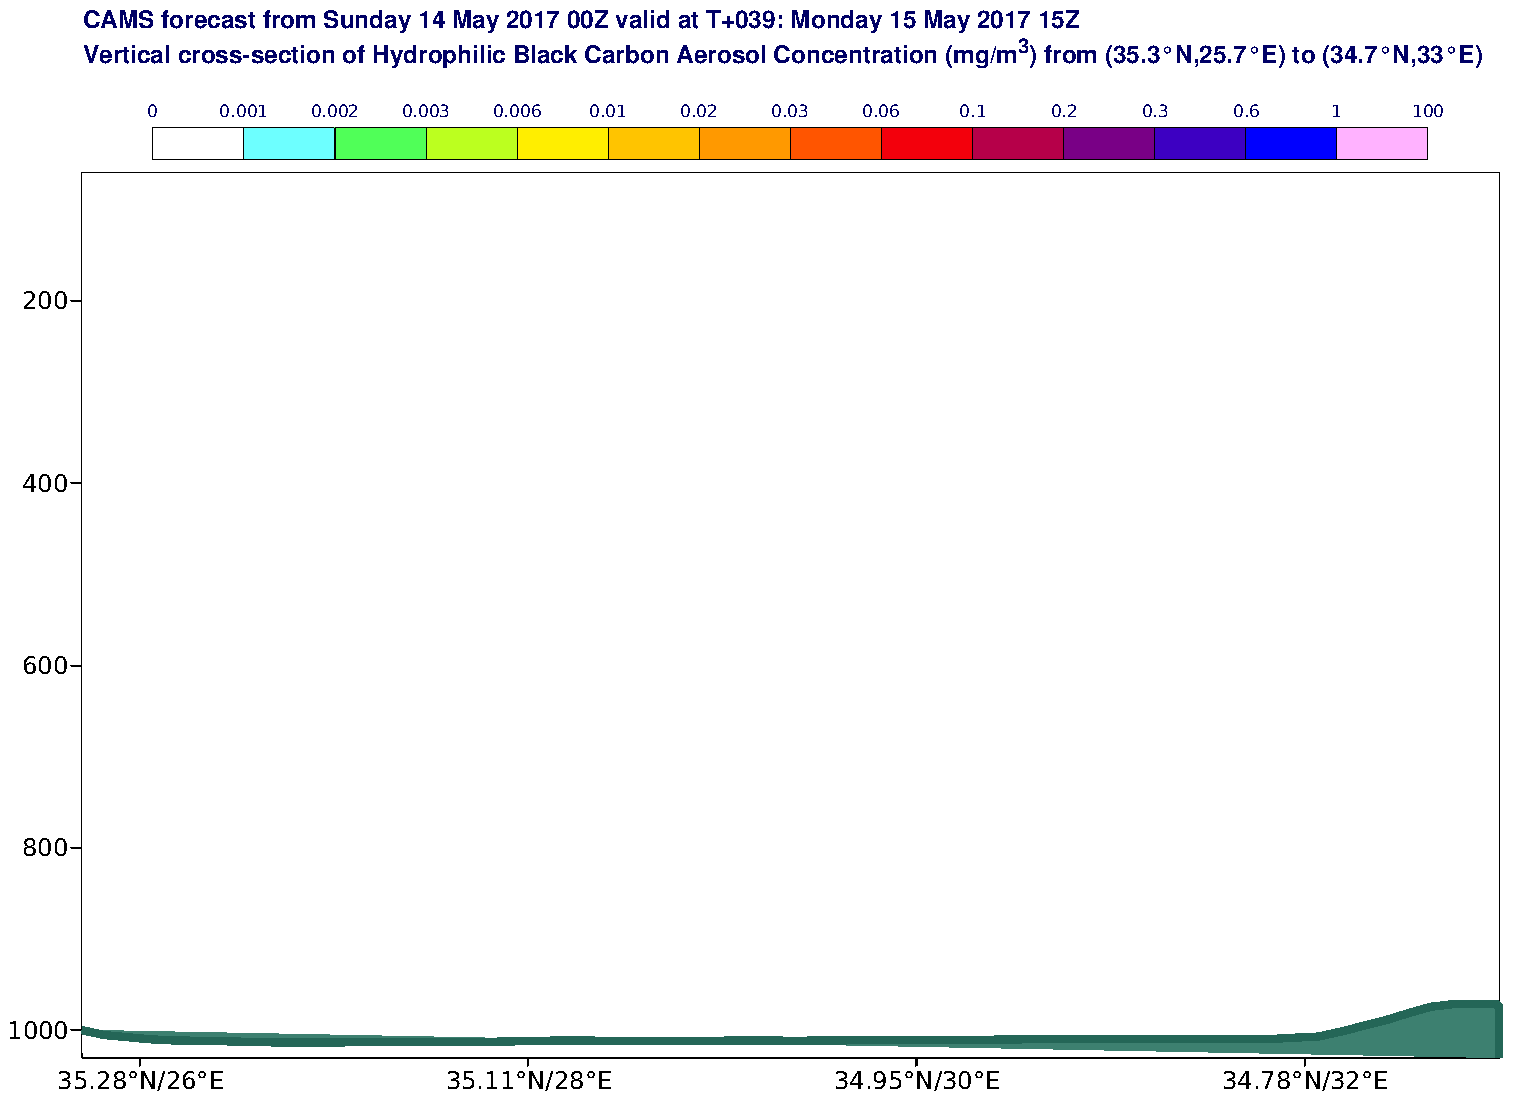 Vertical cross-section of Hydrophilic Black Carbon Aerosol Concentration (mg/m3) valid at T39 - 2017-05-15 15:00